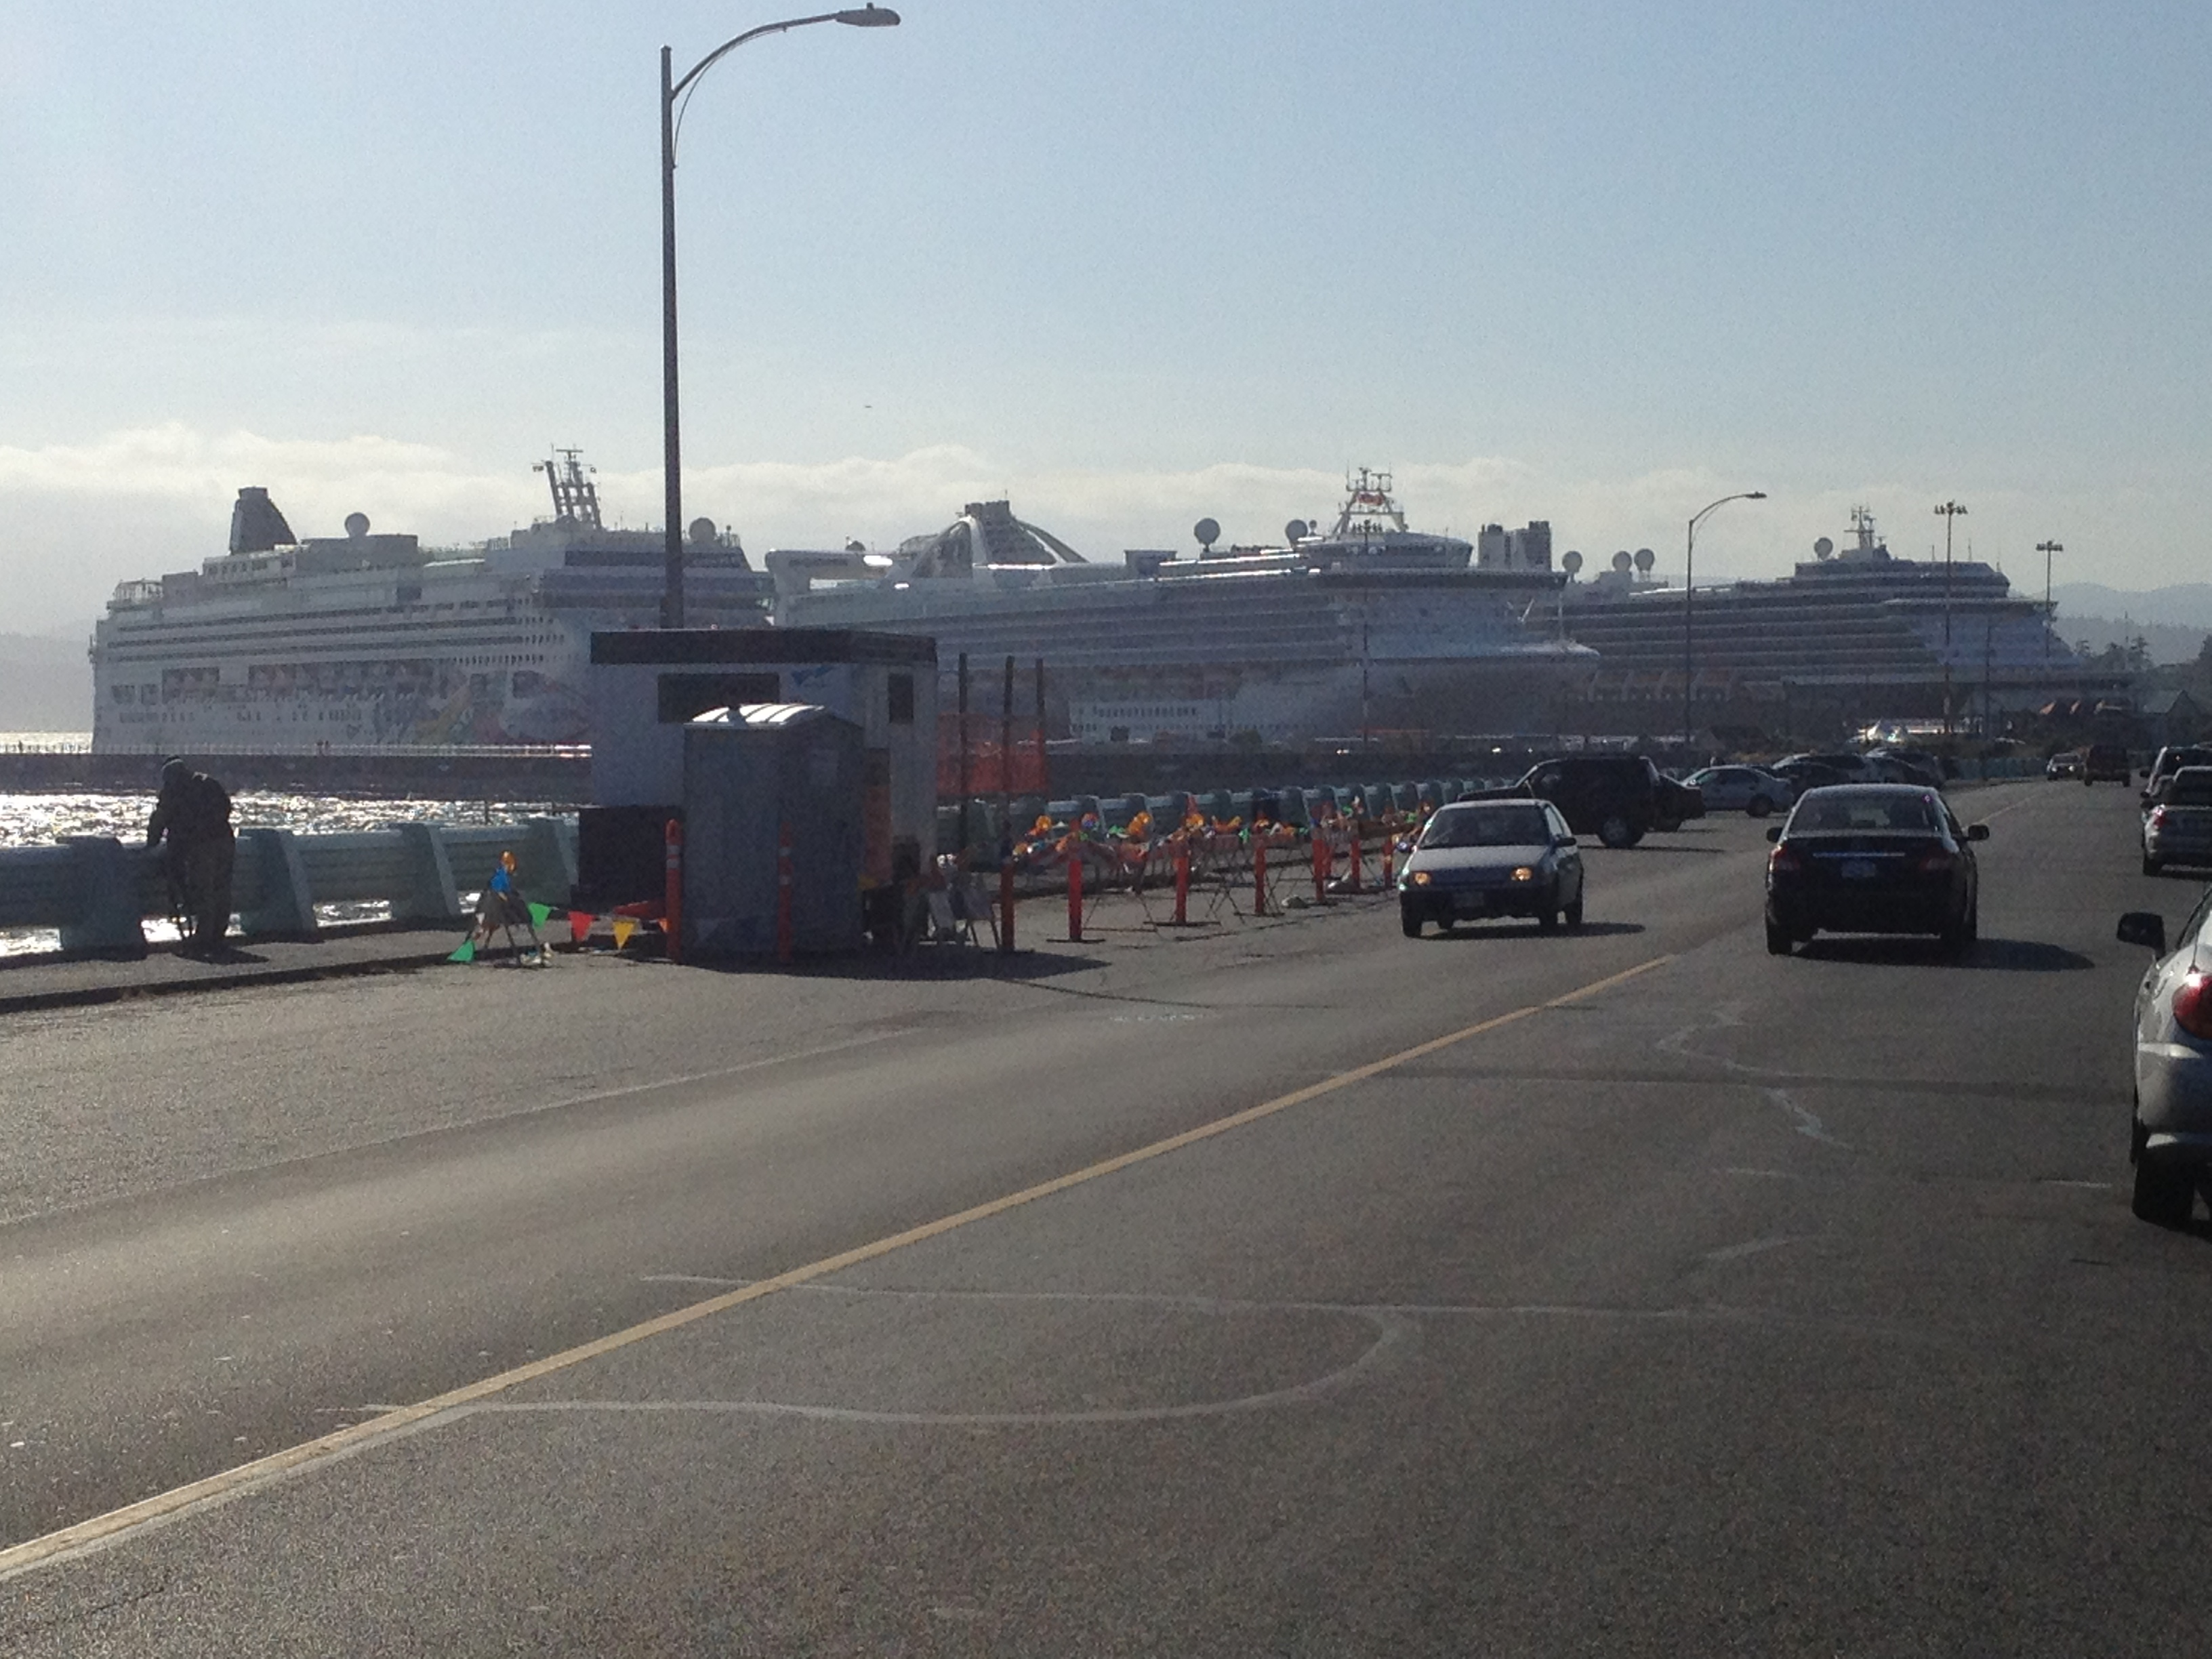 Cruise ships at Ogden Point. A short walk from Gingerbread Cottage